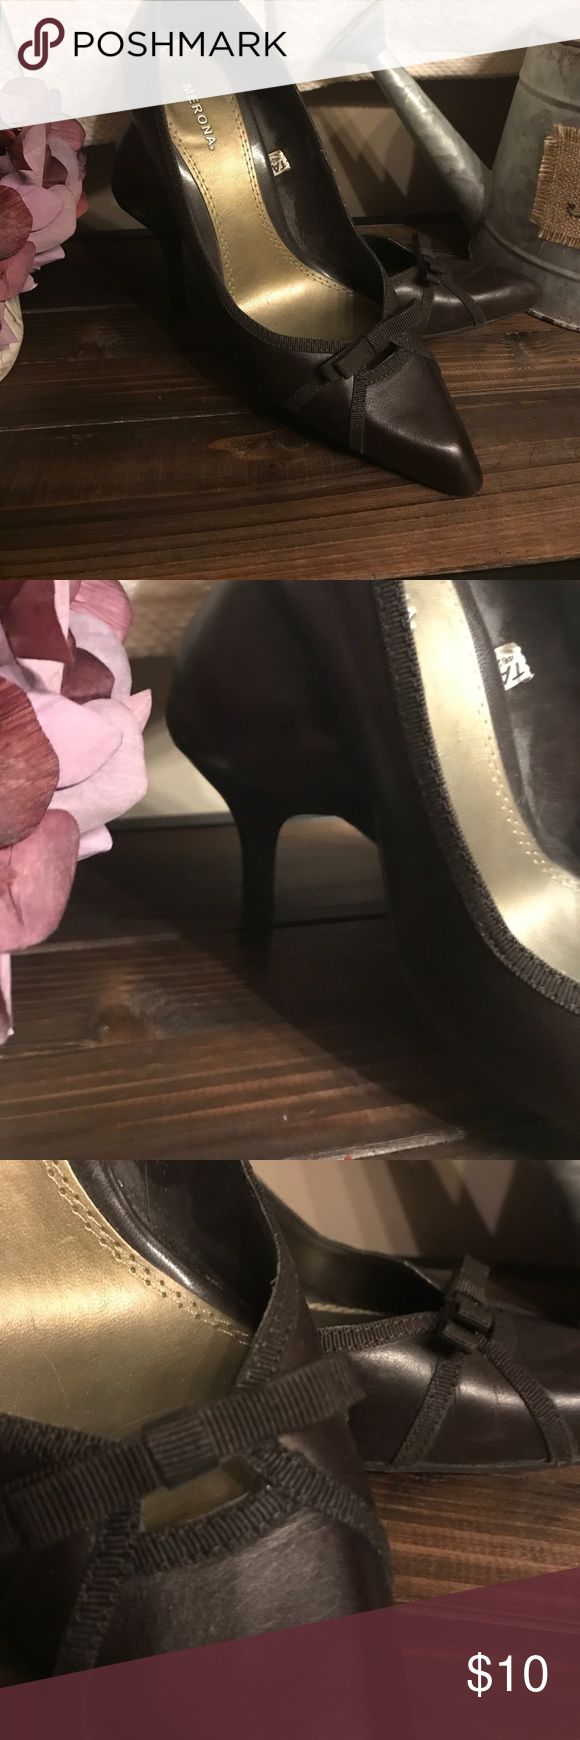 Merona brown bow pumps Worn a couple of times but I'm cleaning out my closet and it didn't make the cut. Merona Shoes Heels